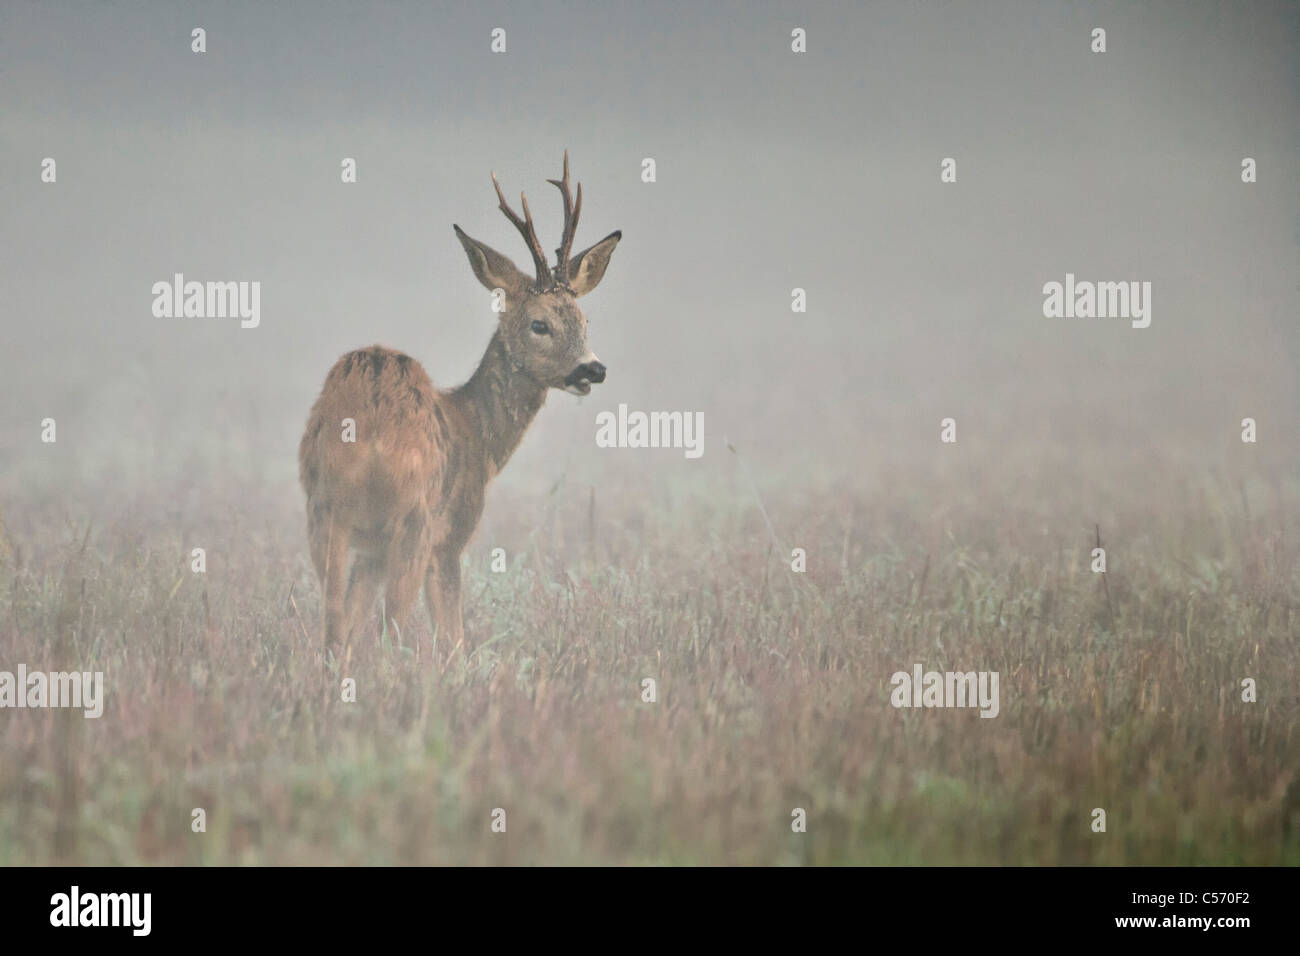 The Netherlands, 's-Graveland, Deer or roe in mist. - Stock Image